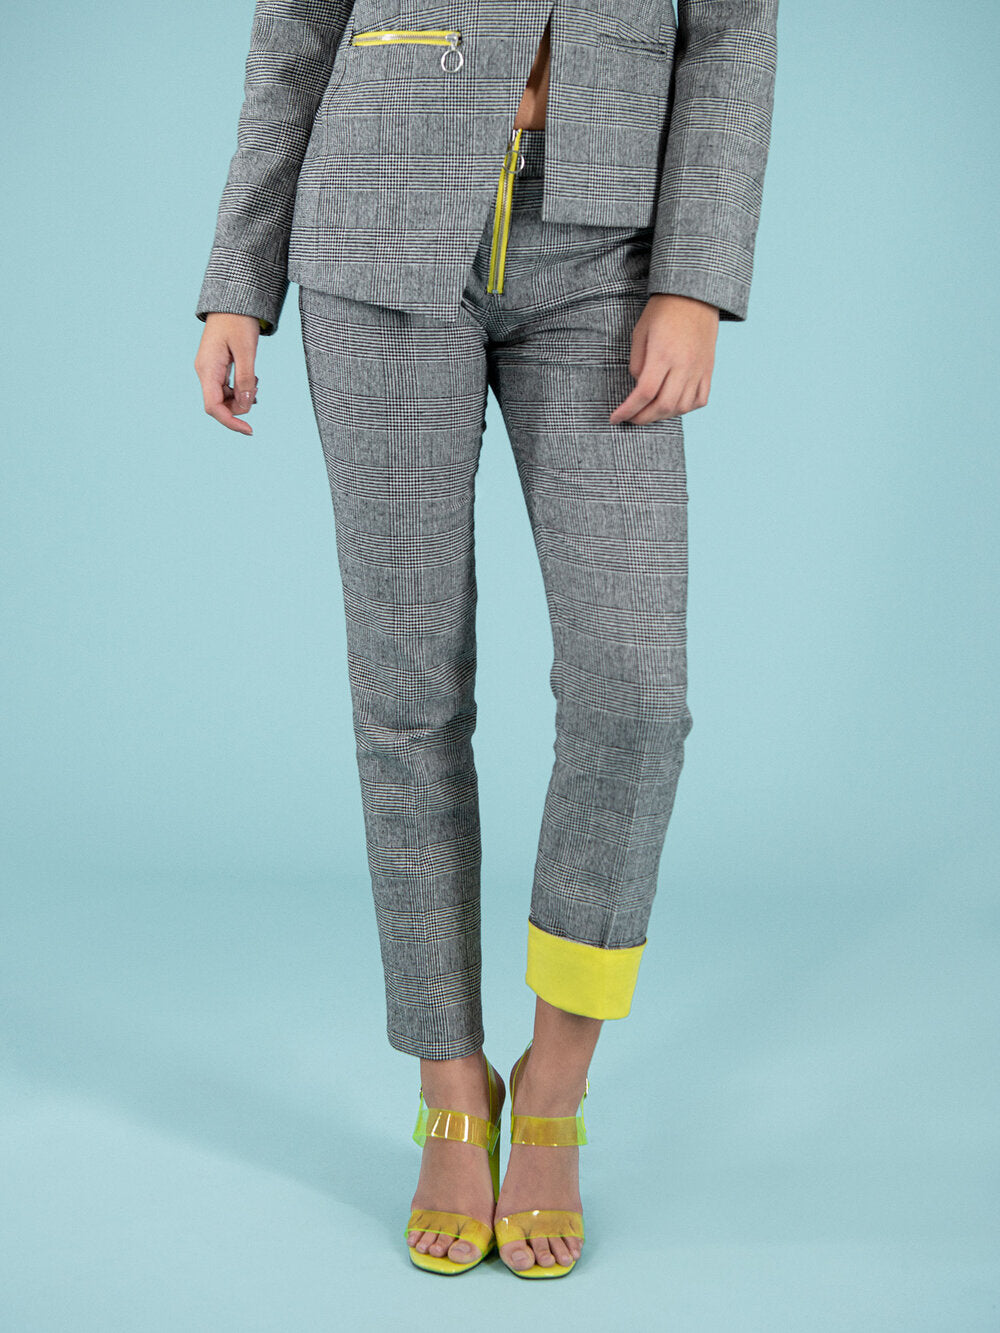 Office suitpants with yellow hem